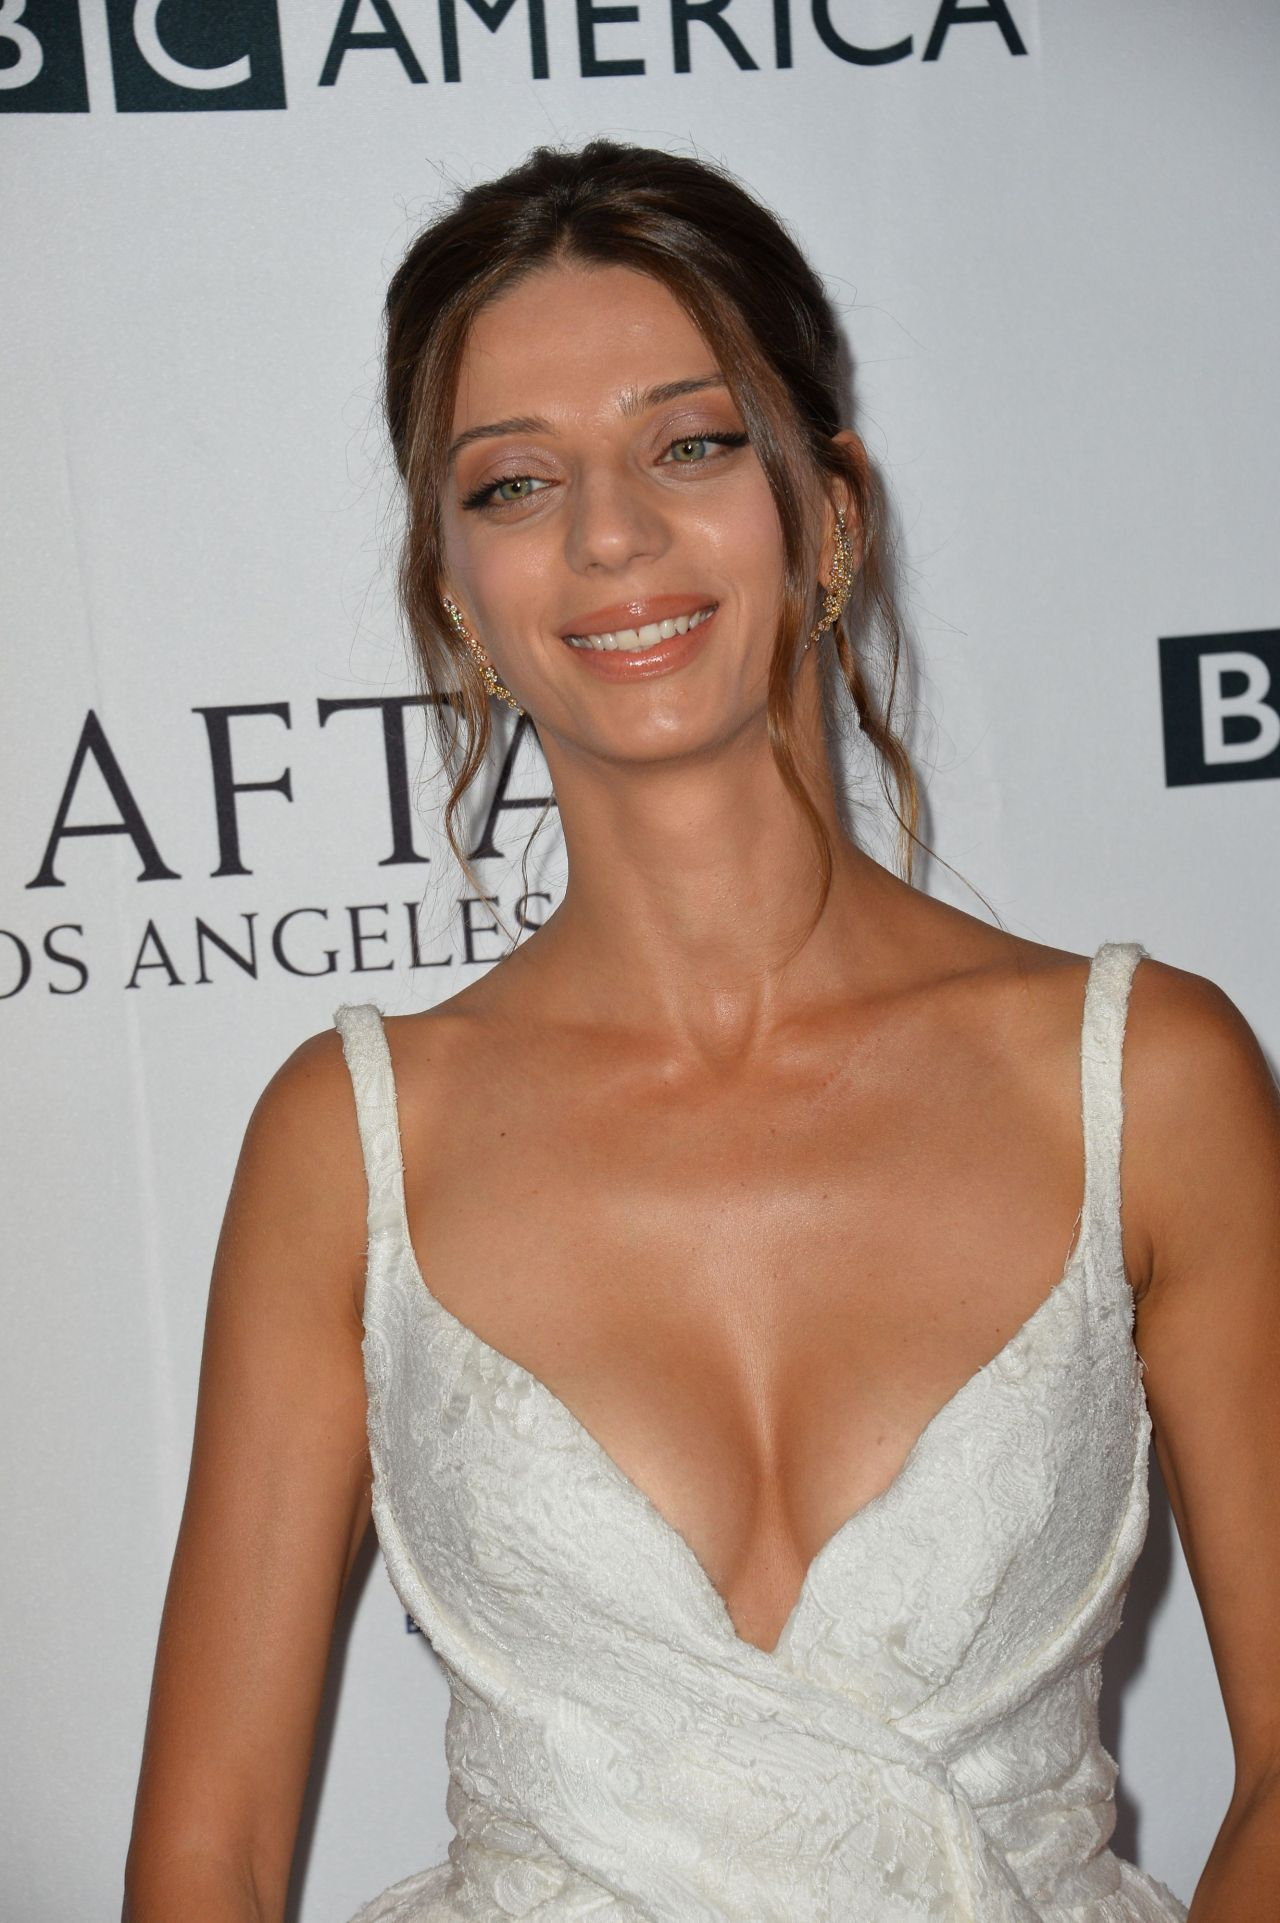 Angela Sarafyan nude (57 photos), Sexy, Leaked, Feet, lingerie 2006